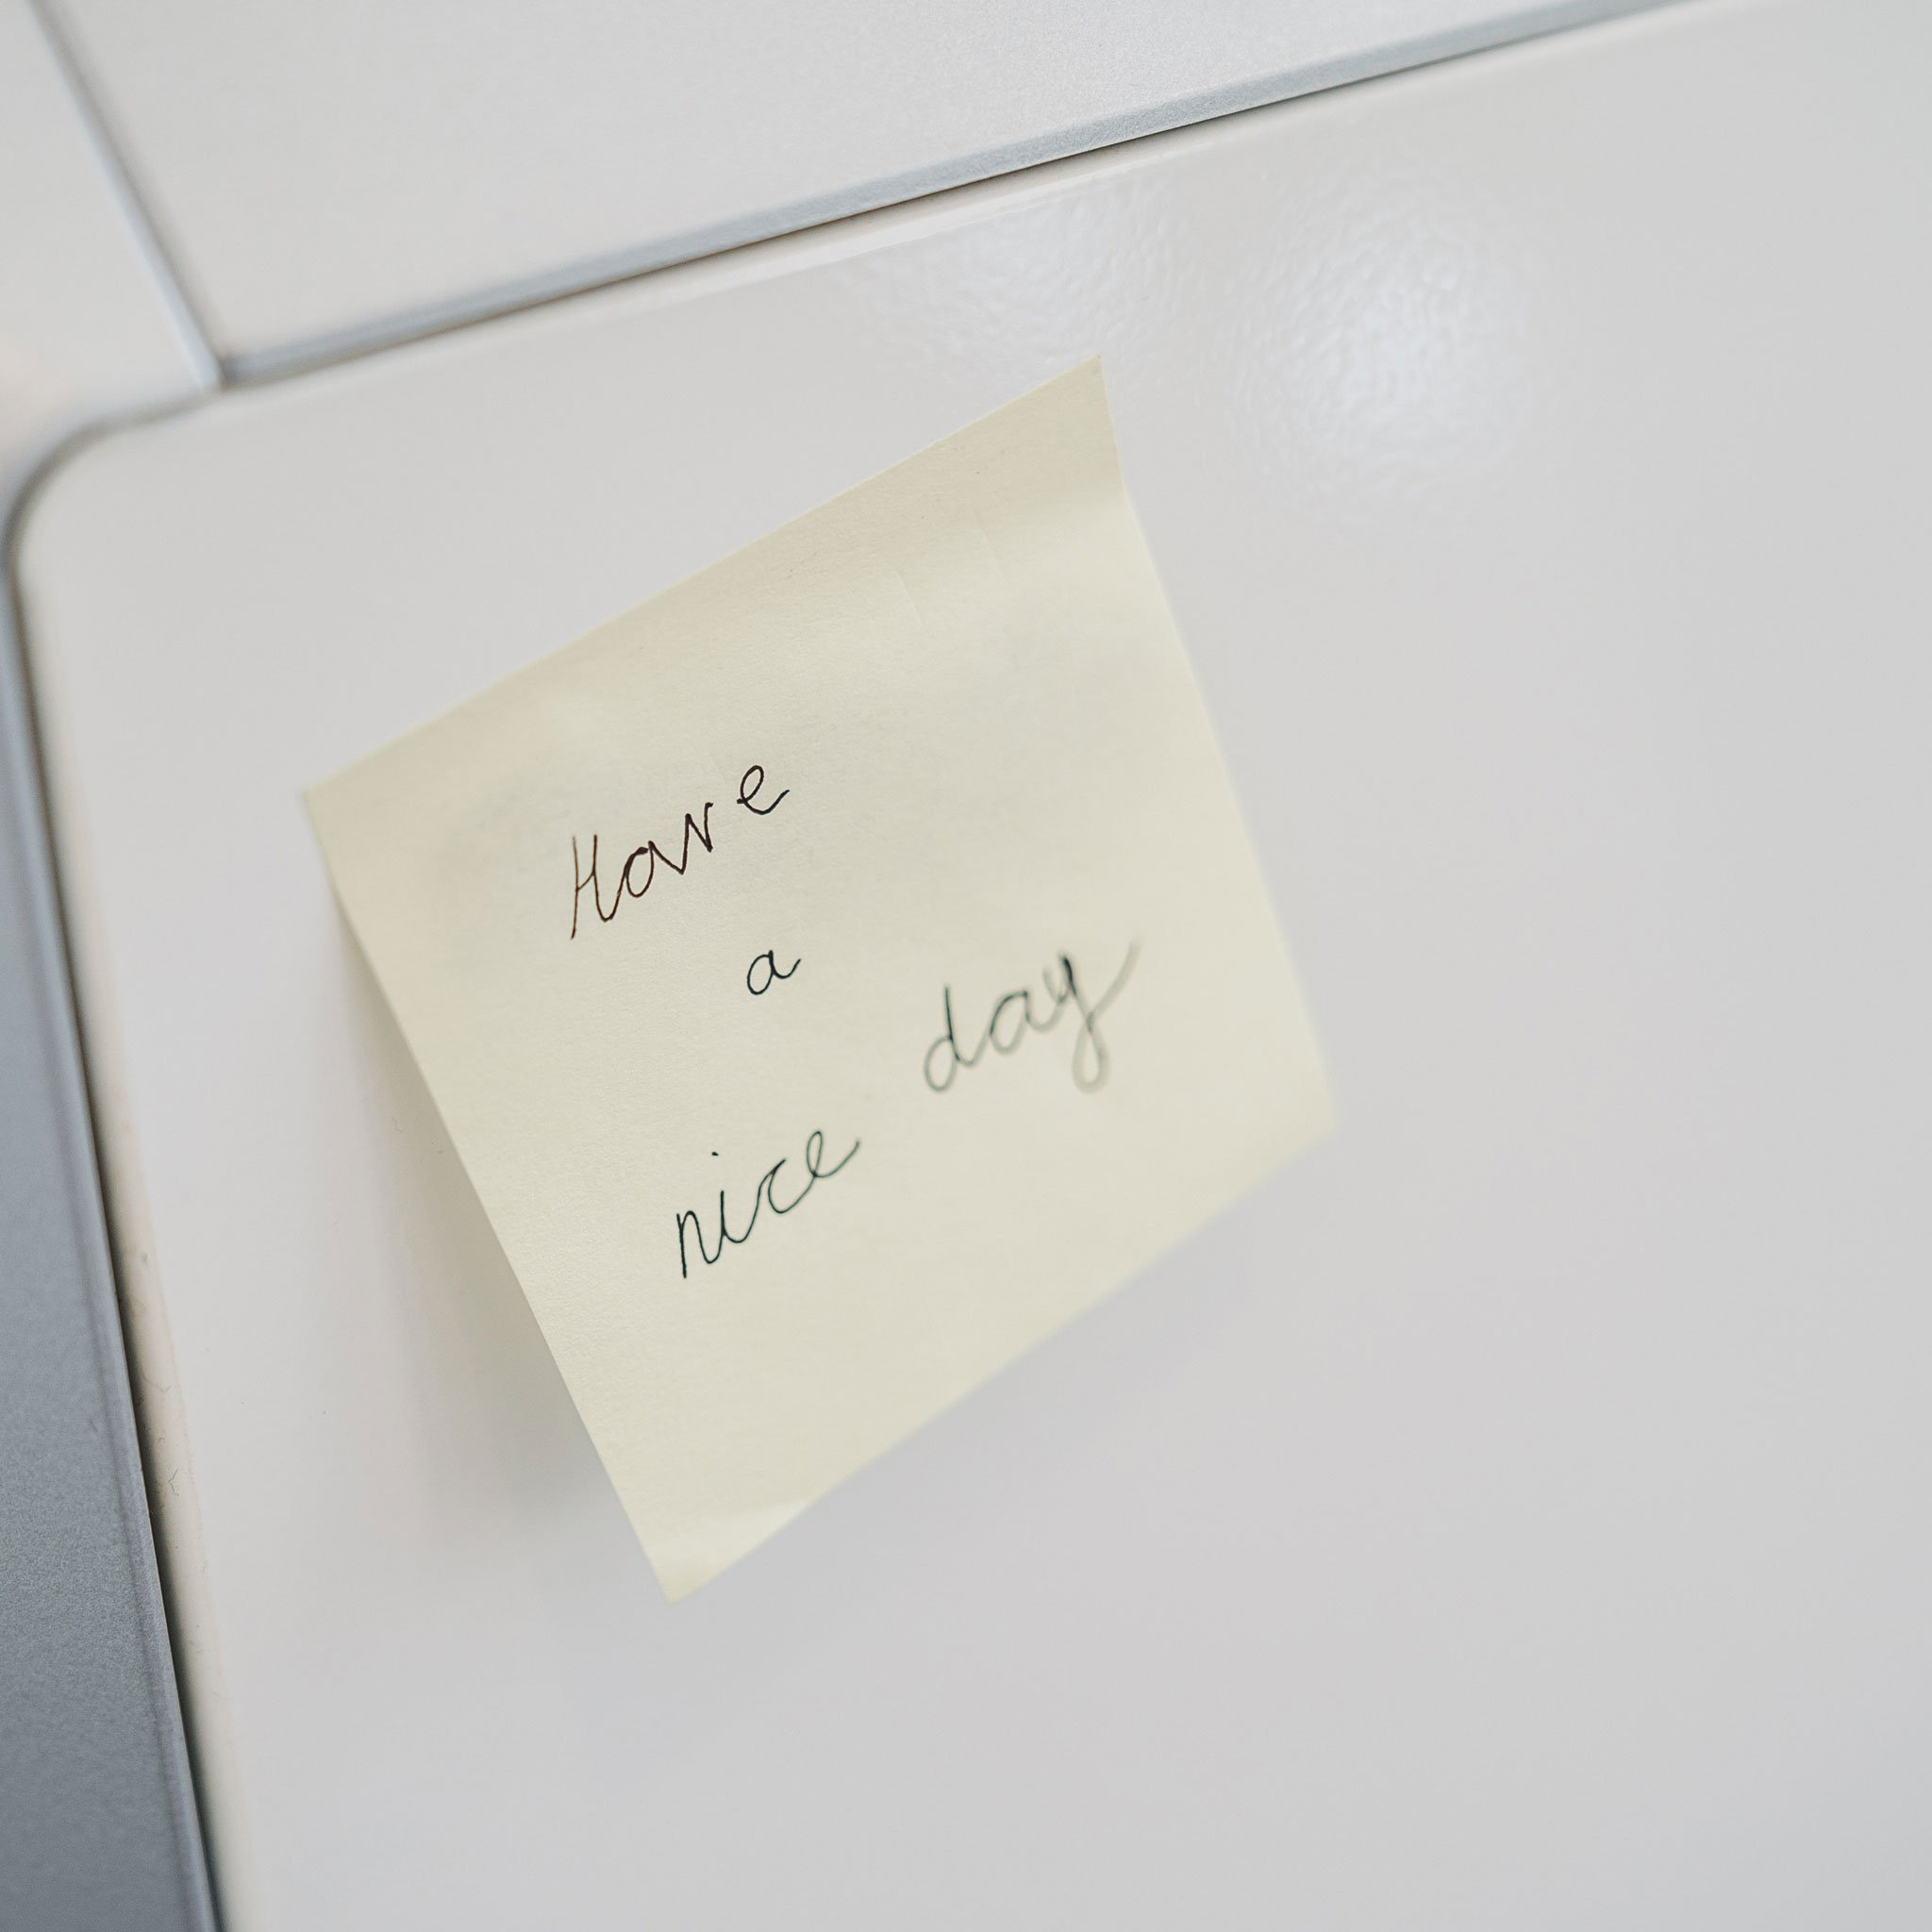 Image of Have a nice day post it for How to Have a Good Day